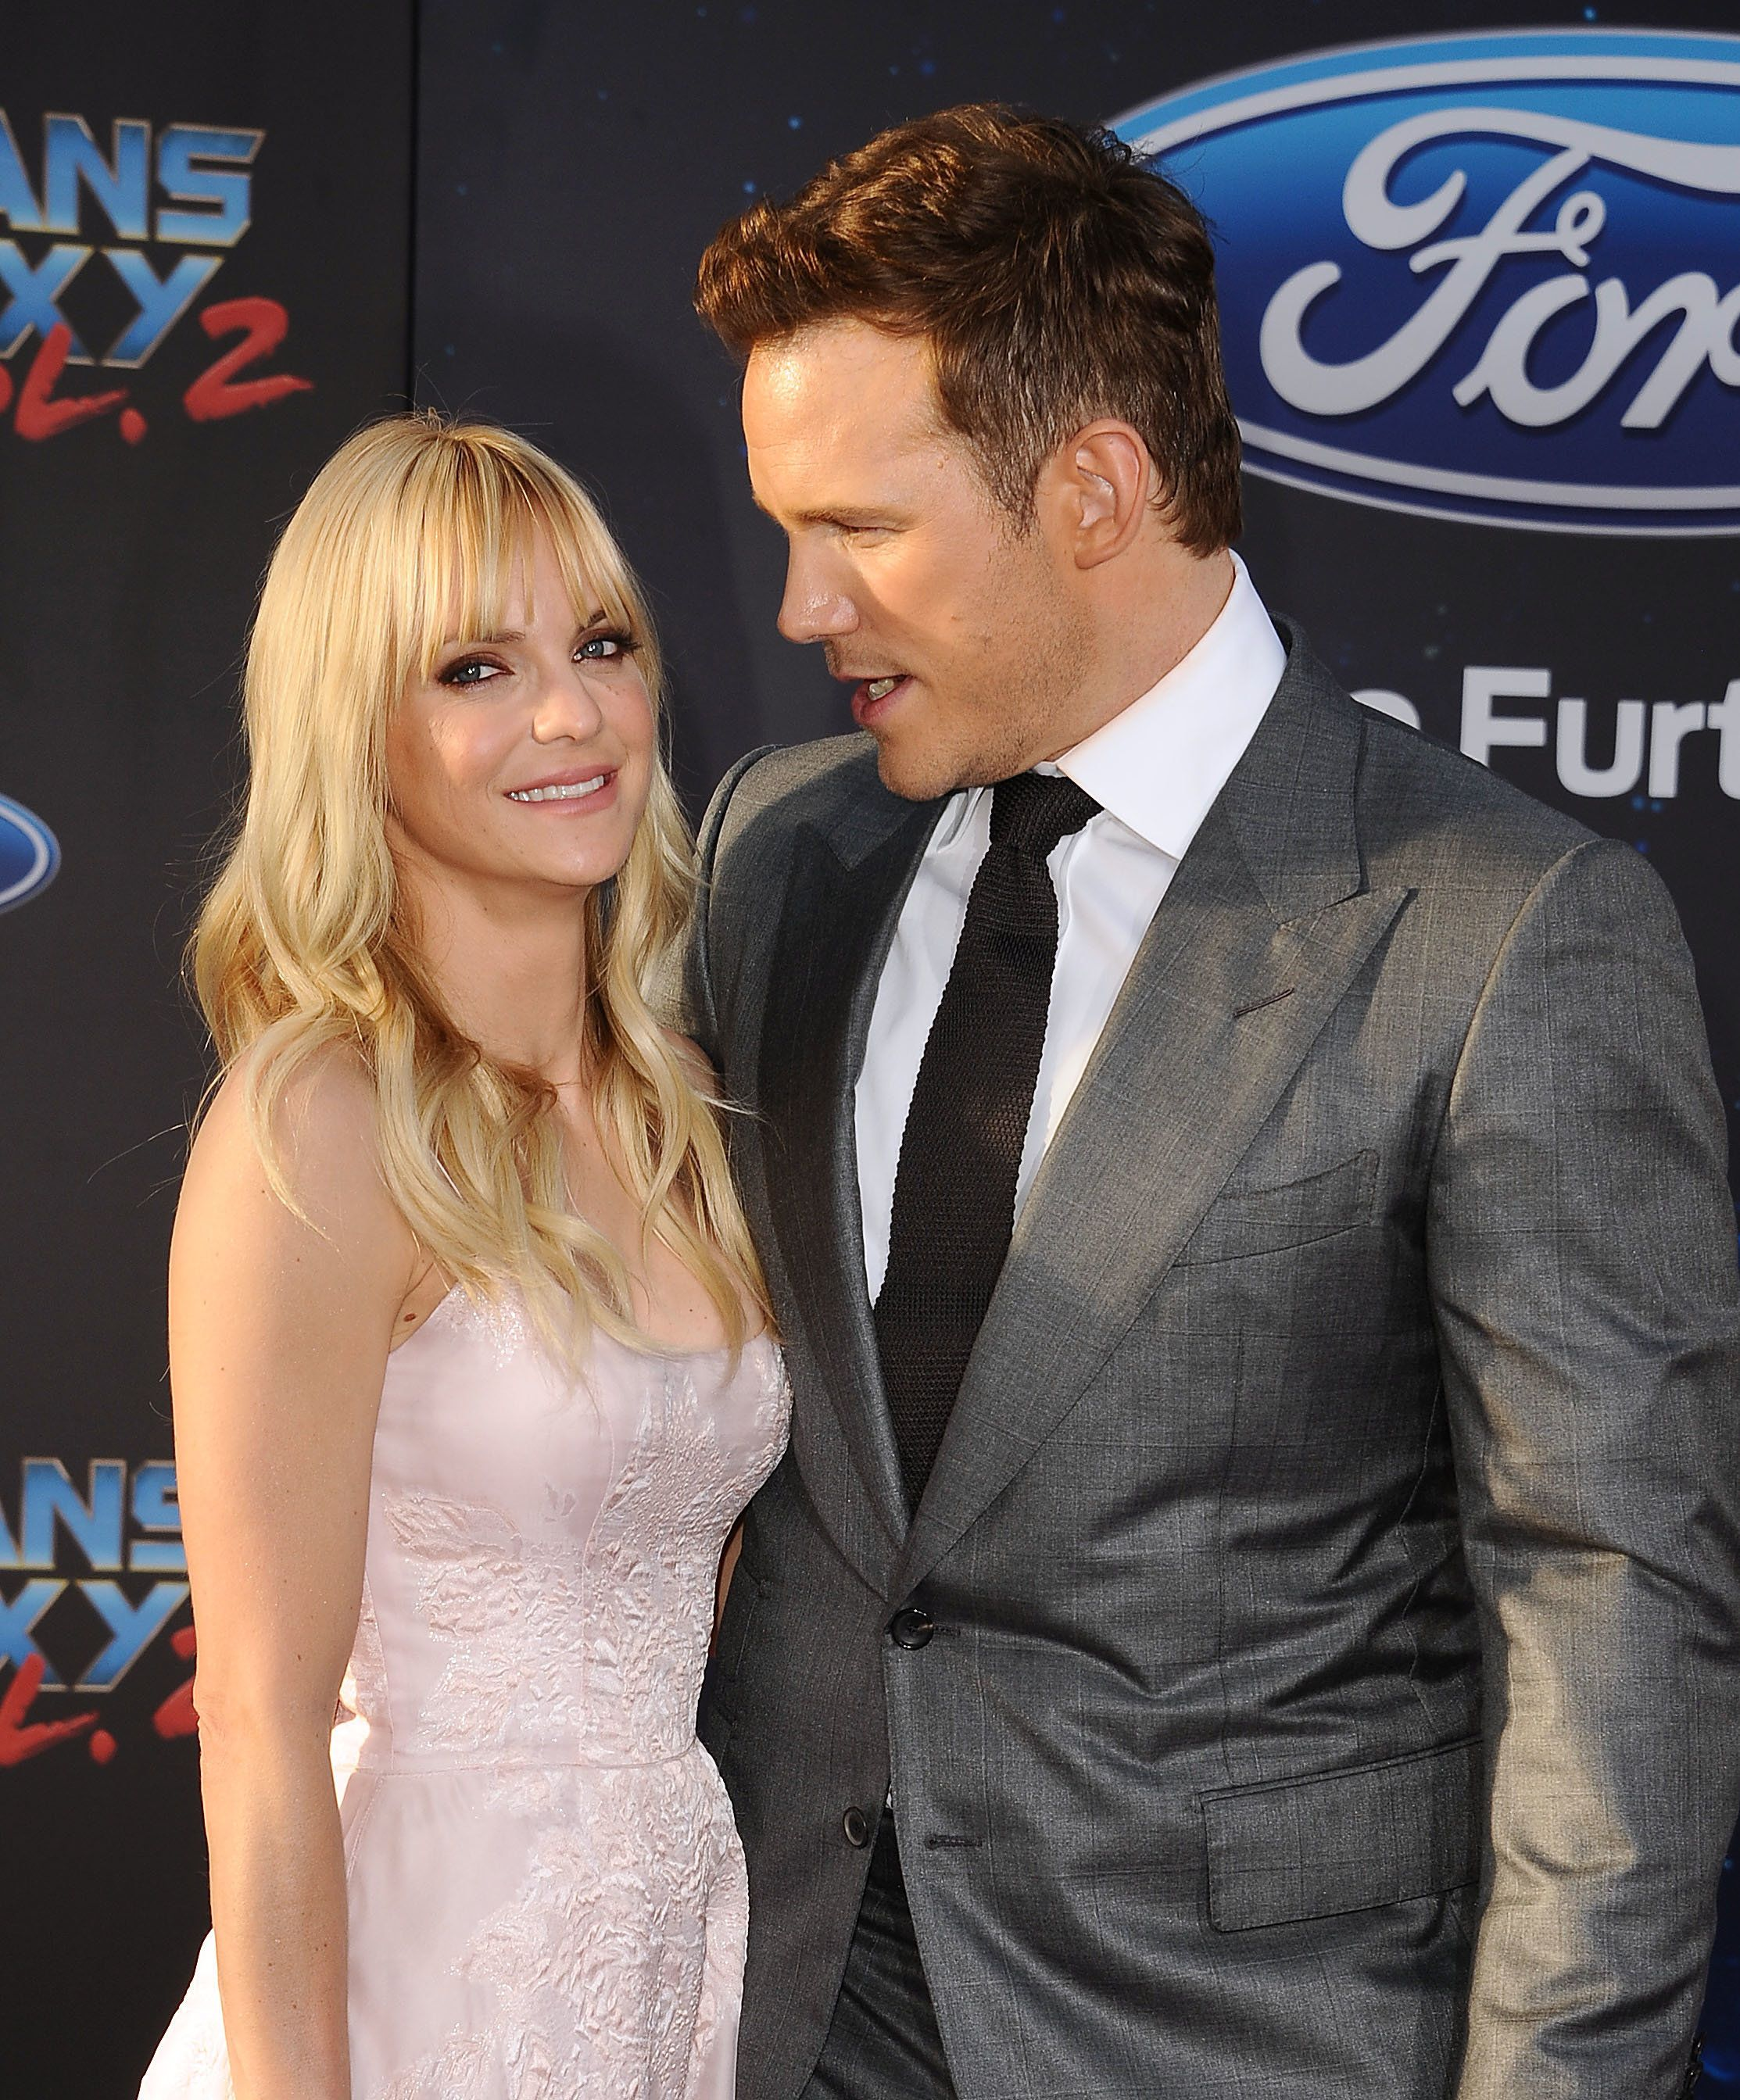 Anna Faris shares message with fans about her divorce from Chris Pratt